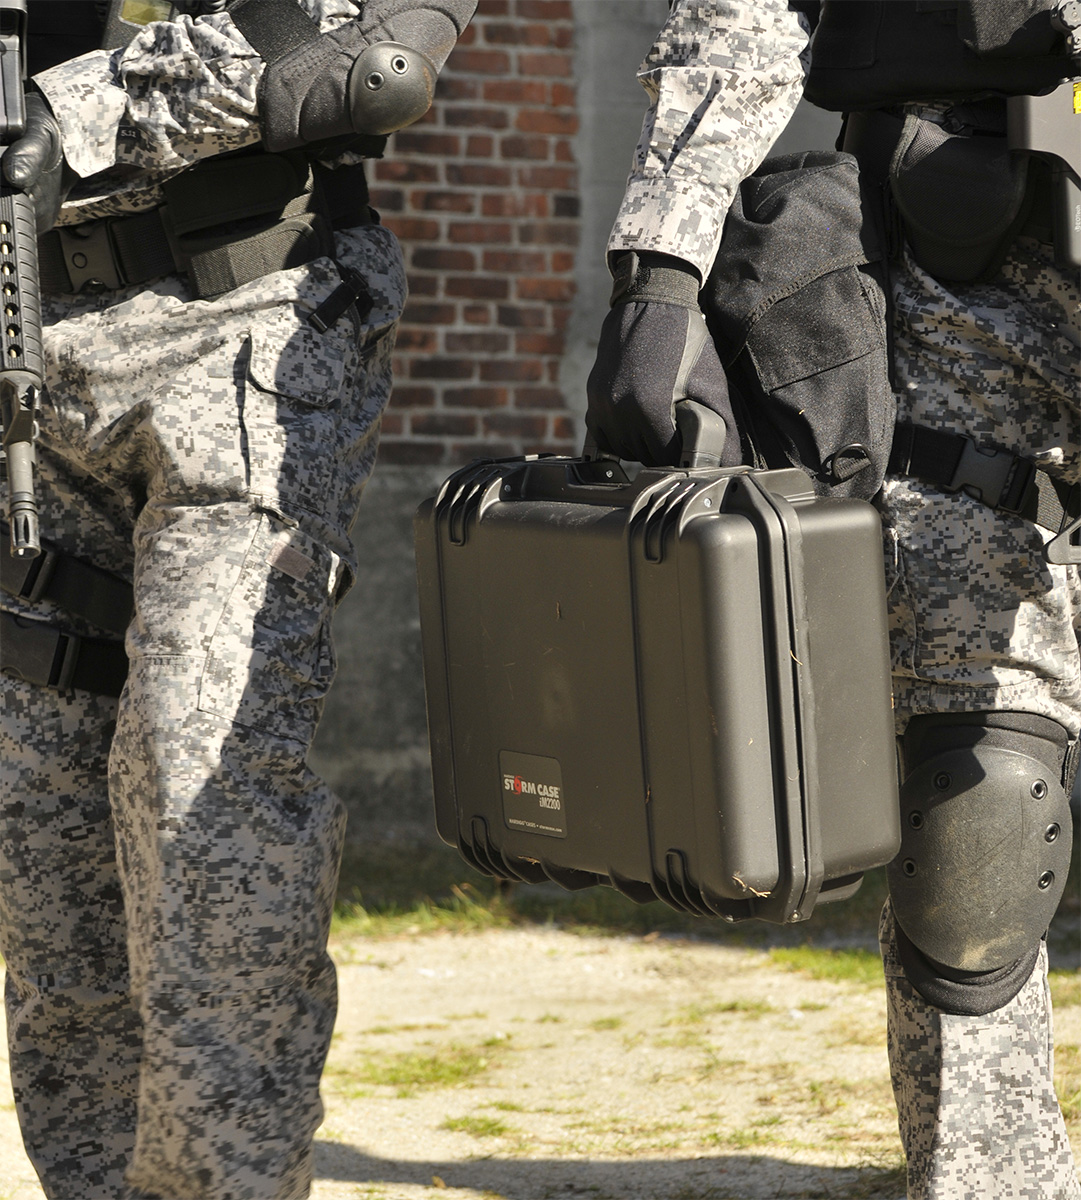 pelican peli products iM2200 storm swat tactical gear hardcase